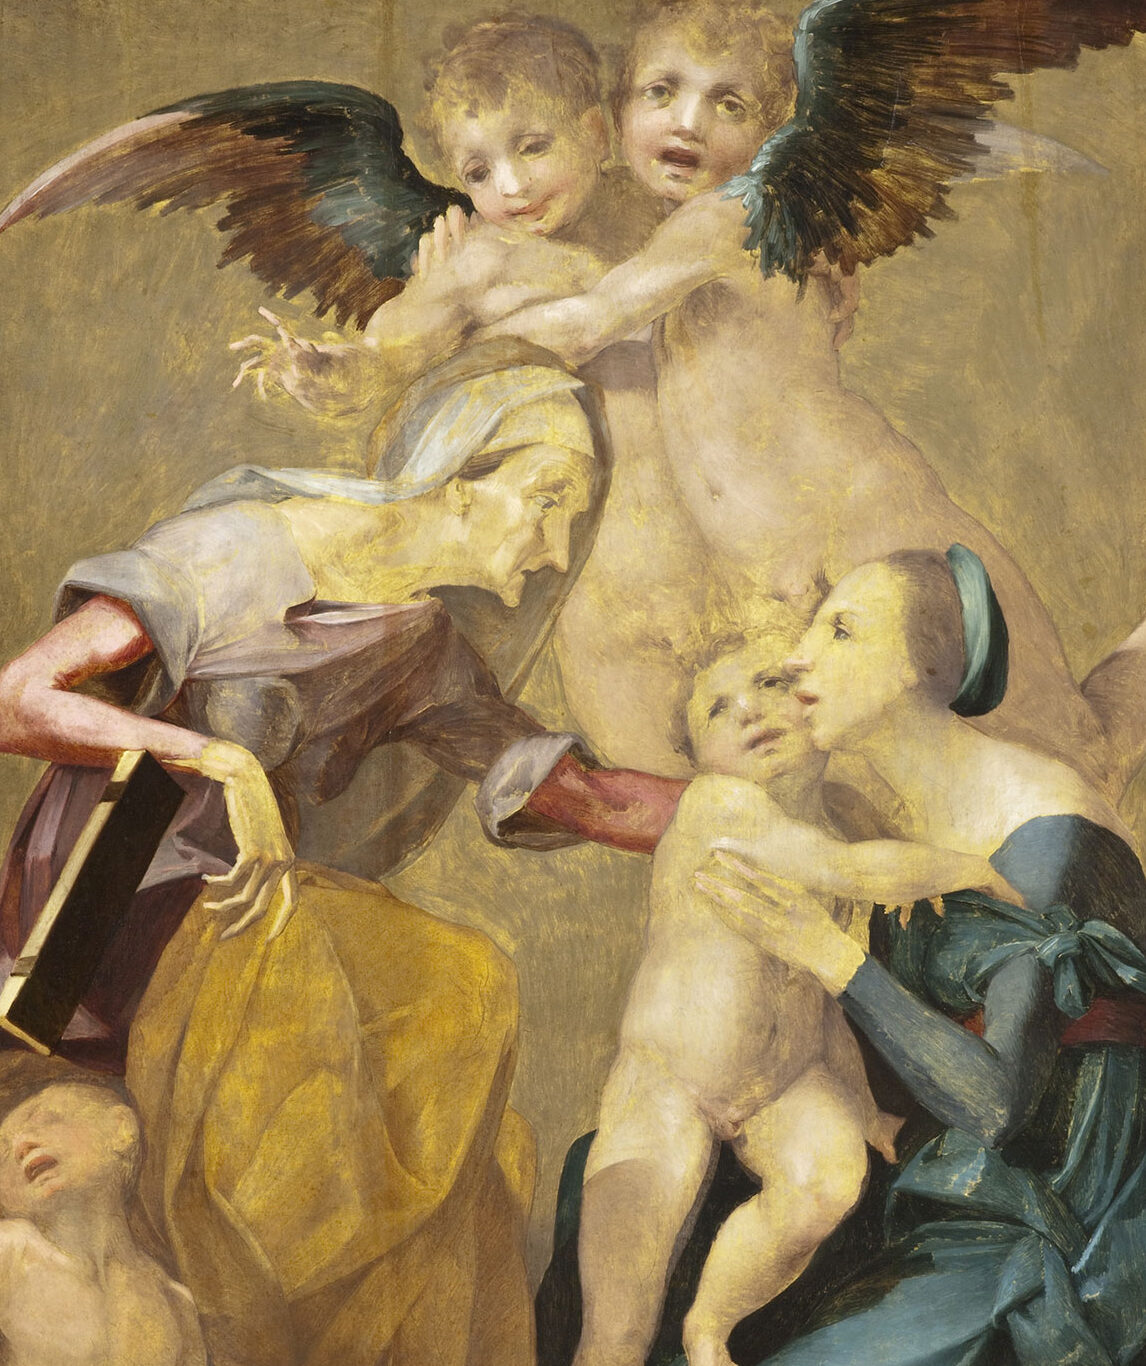 Woman holds a baby away from an older woman, and angels float above.